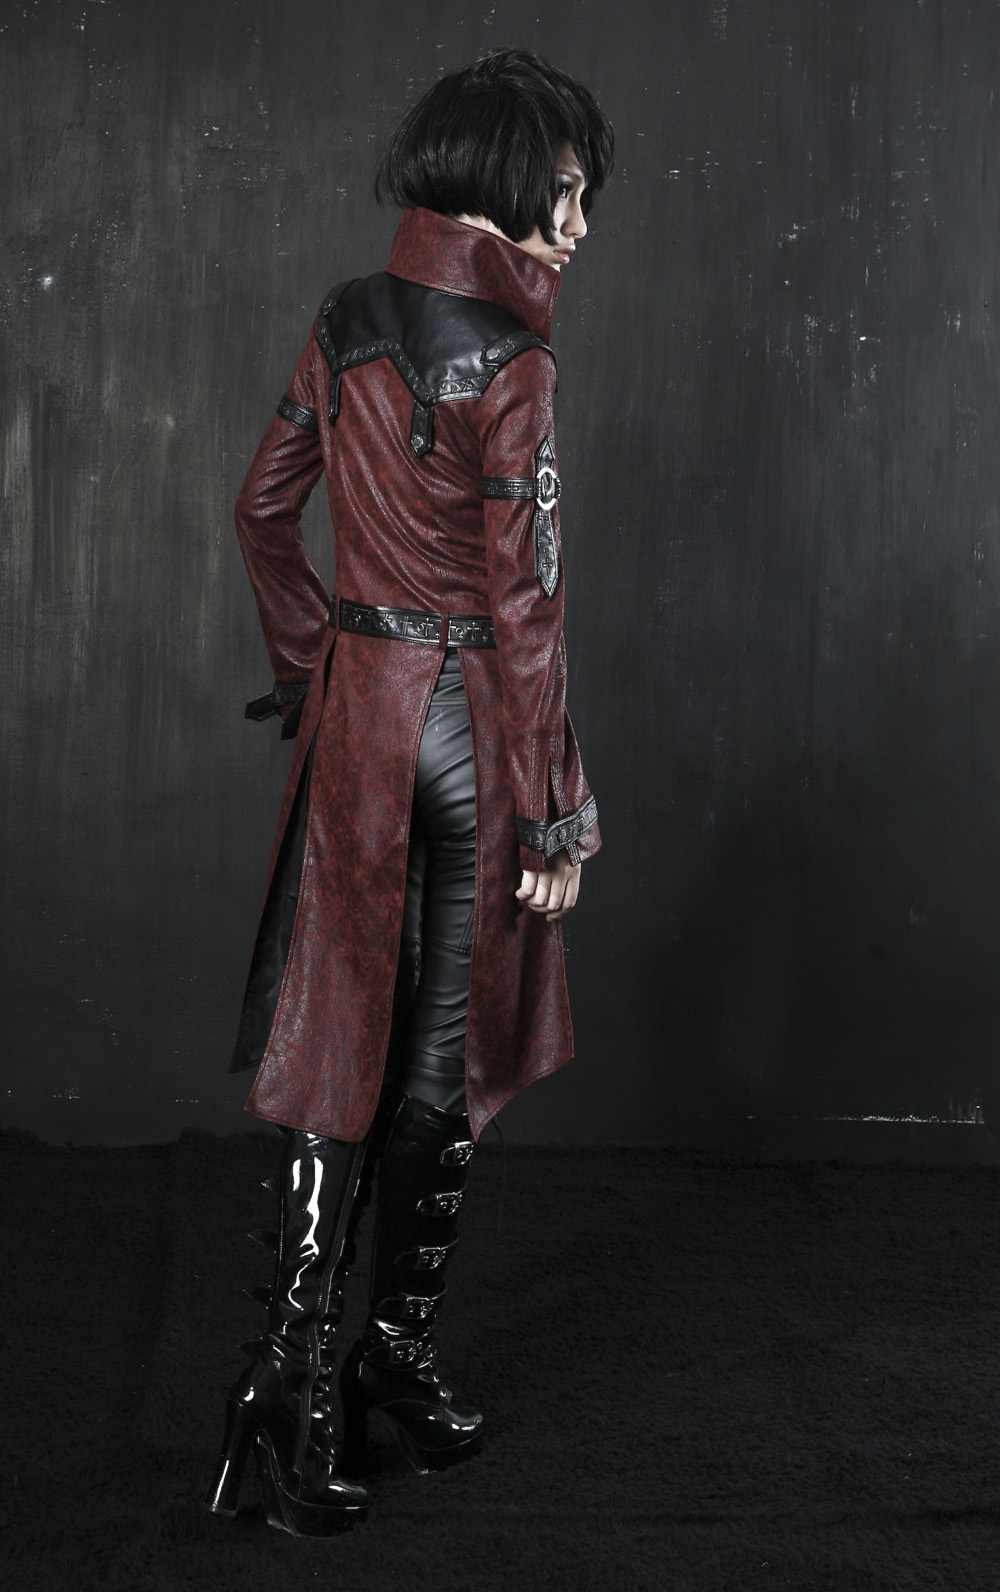 rebelsmarket_ladies_black_long_pleather_coat_steampunk_buckle_punk_rave_jacket_6_ship_coats_7.jpg